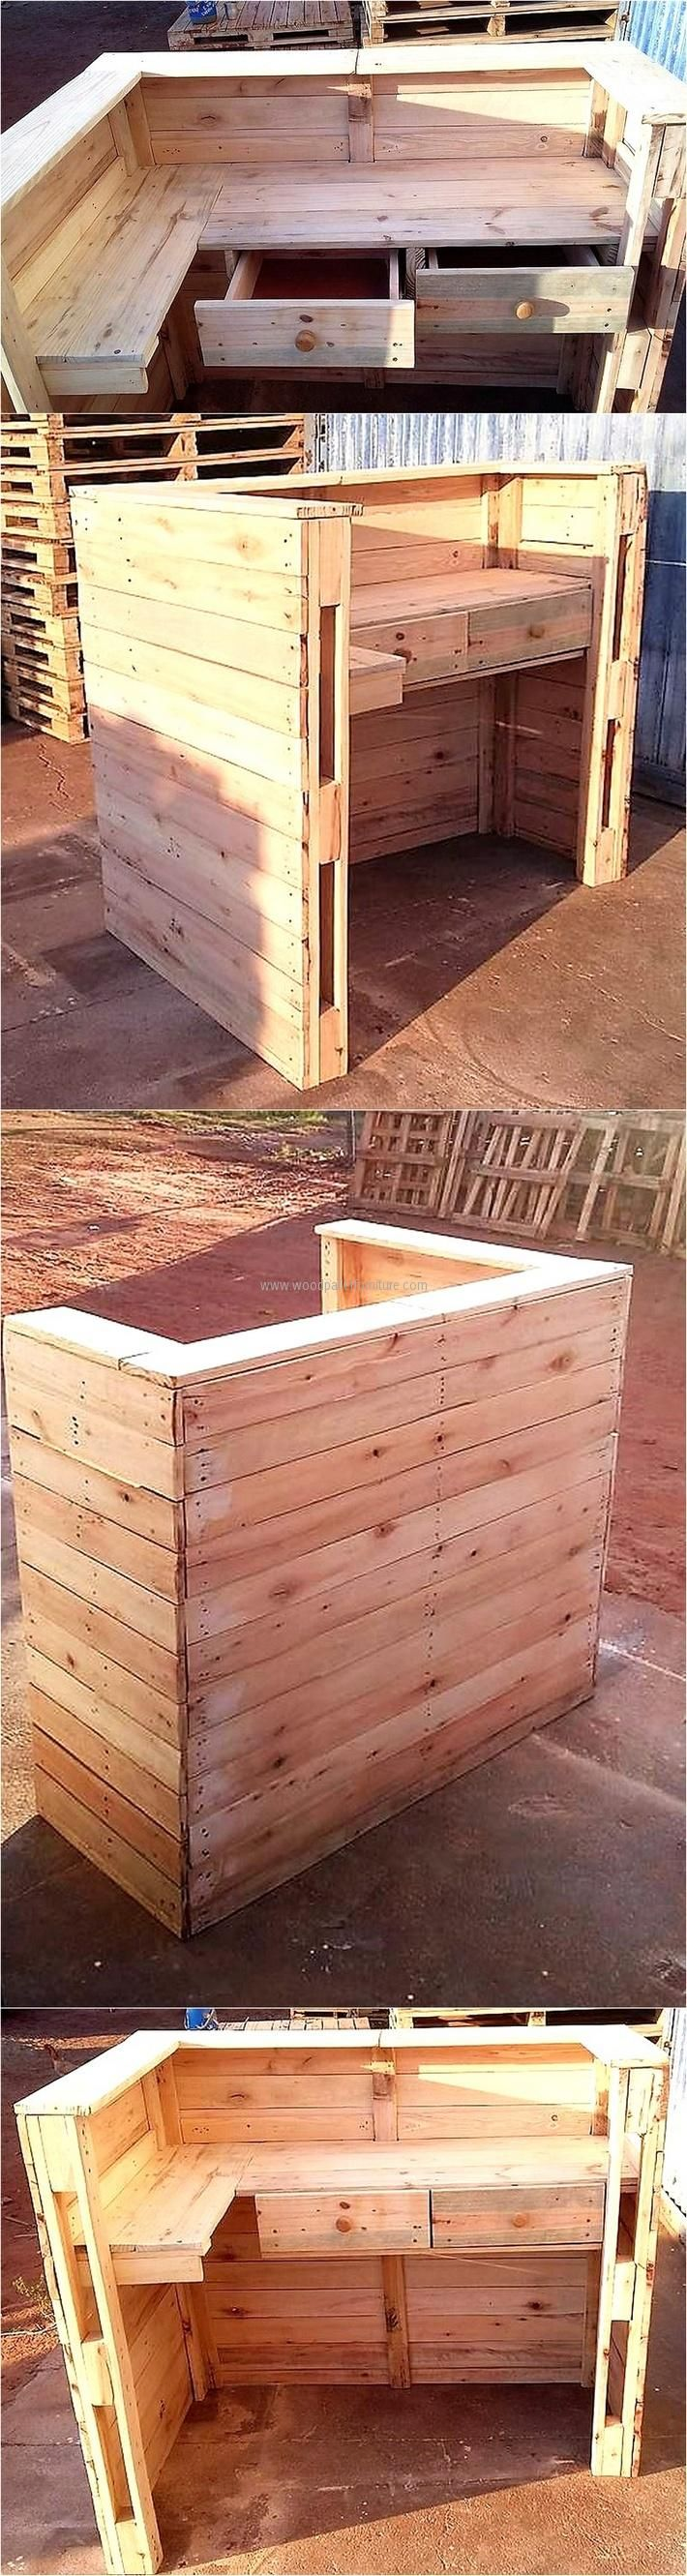 This is a wood pallet bar which can be used in a home for placing in the kid's room, so they can study easily and can get a comfortable place to complete their homework. There are drawers in which the stationary and the books can be kept.